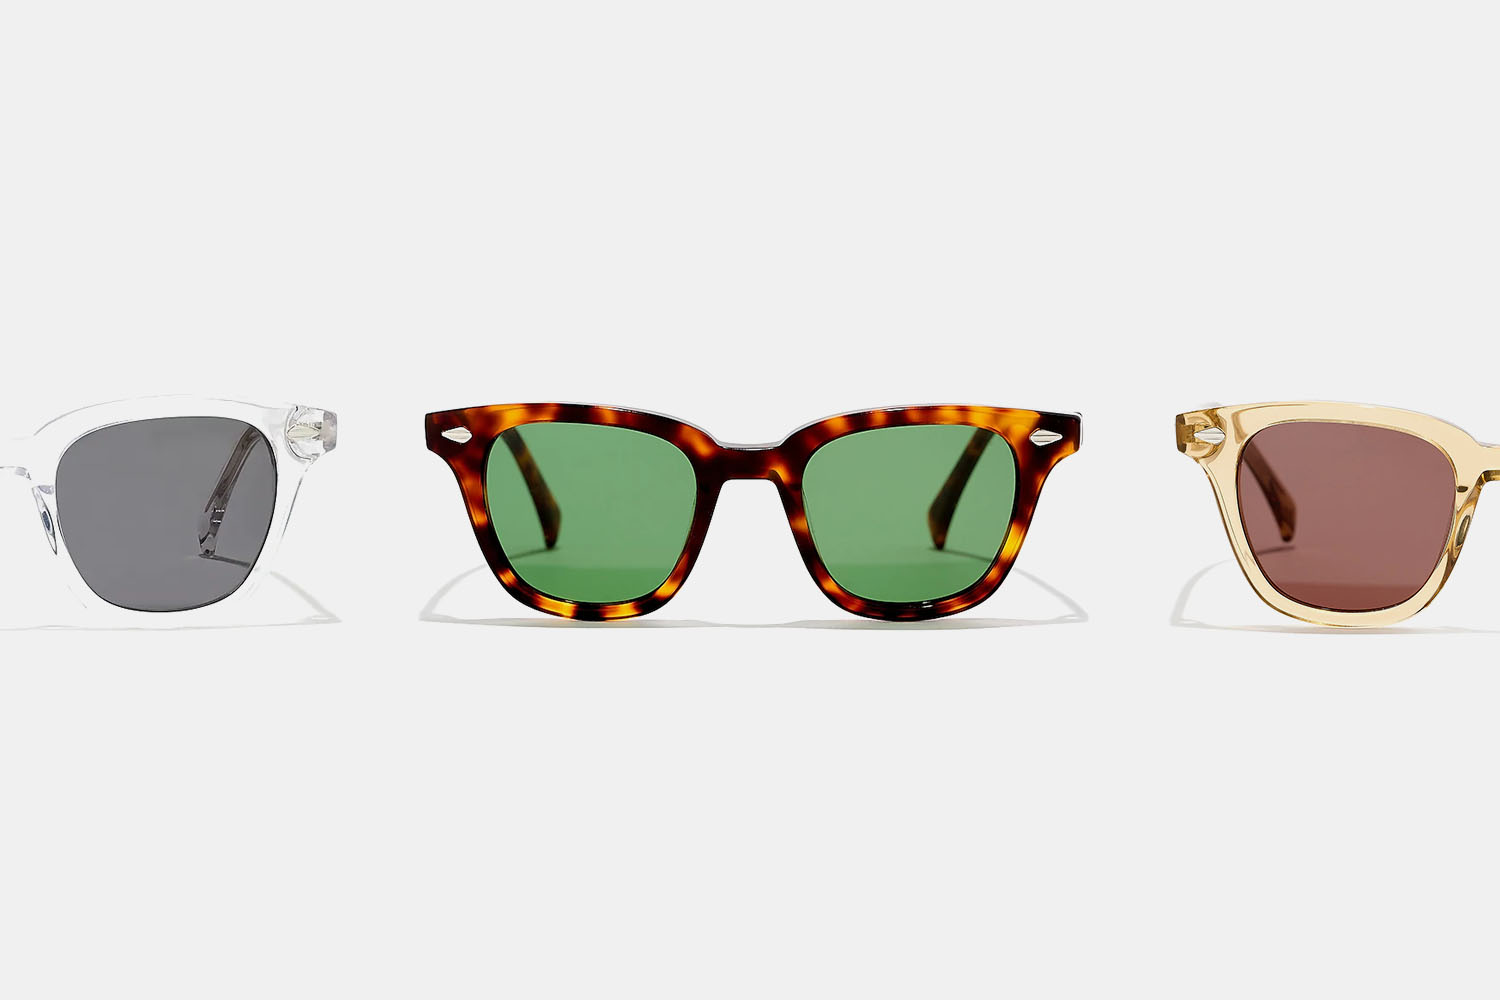 Deal: These J.Crew Sunglasses Are Only $26